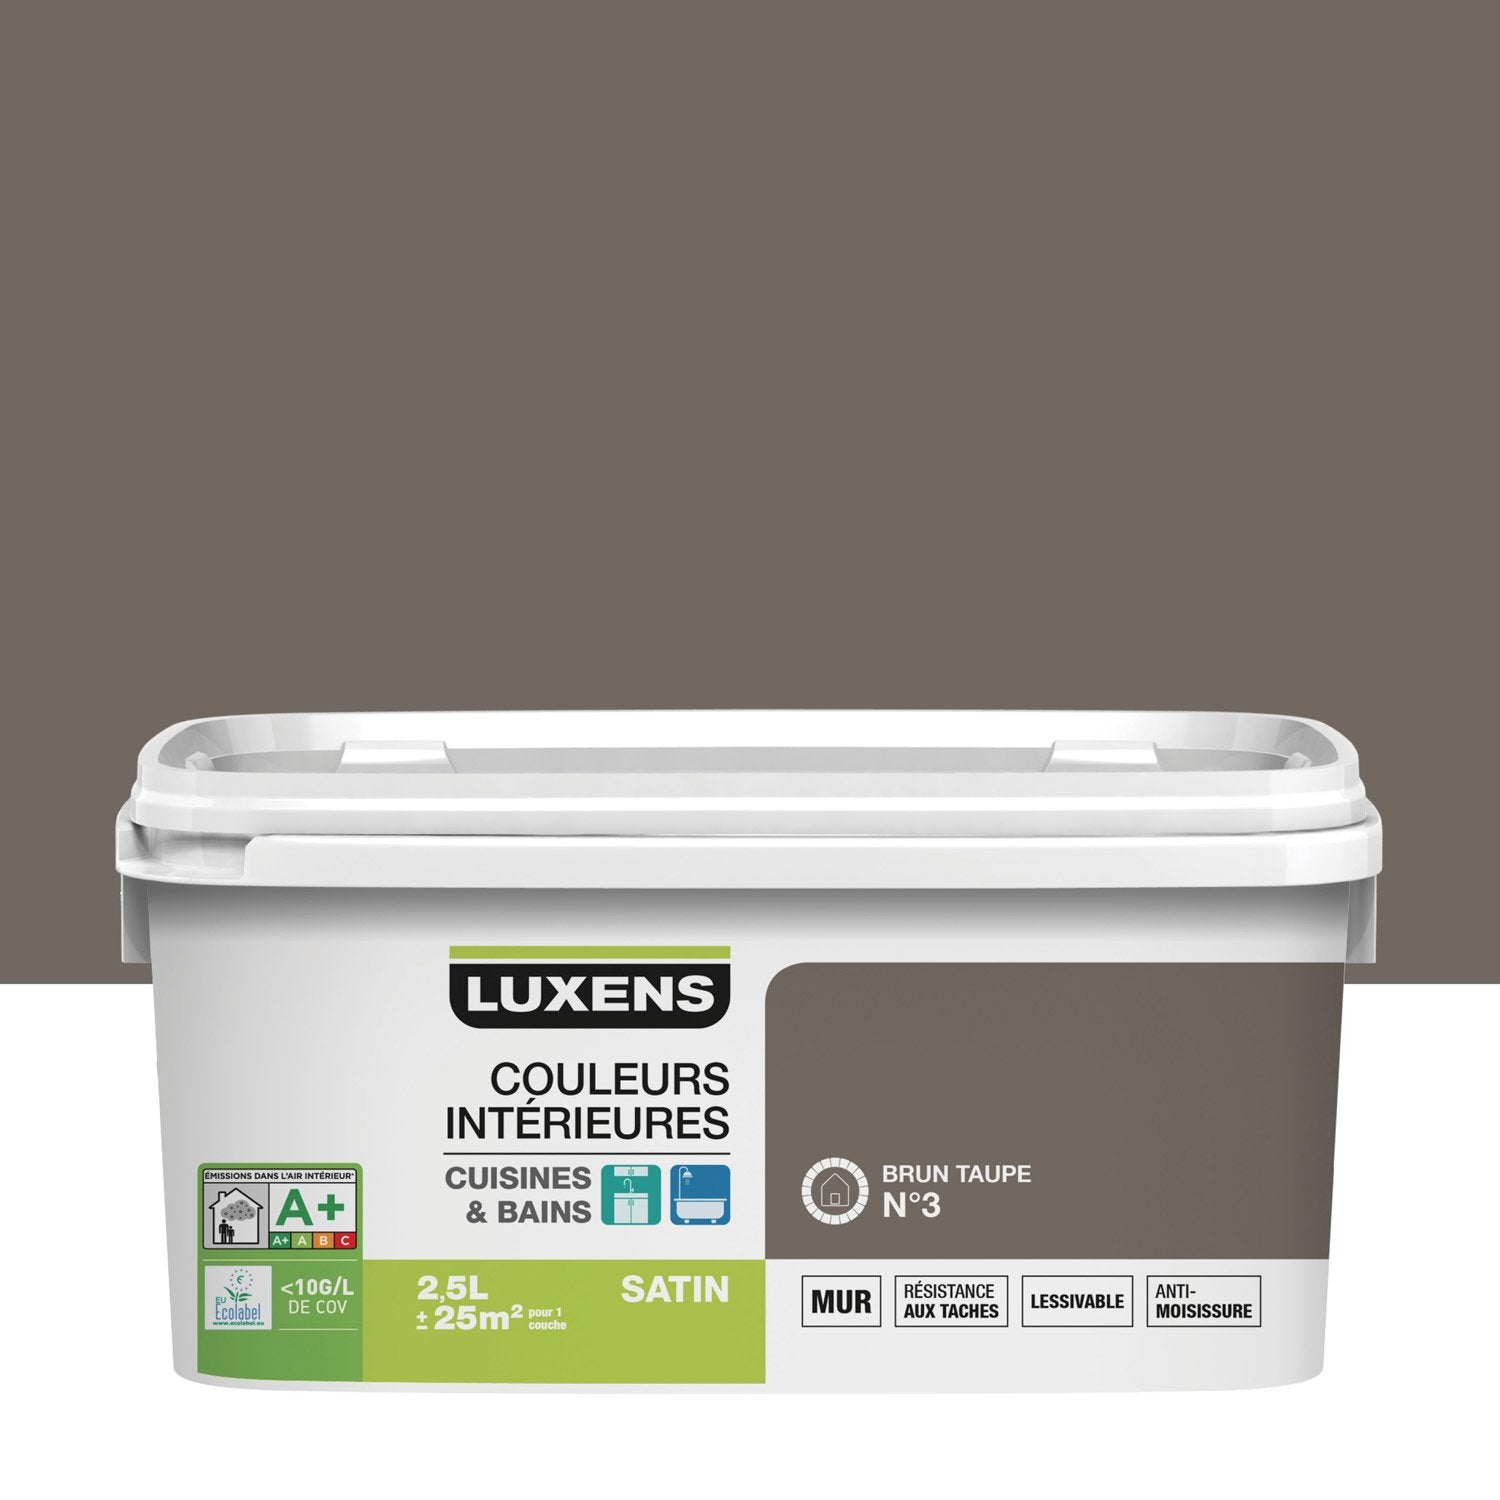 Peinture couleurs int rieures luxens brun taupe 3 2 5 l leroy merlin for Peinture brun taupe